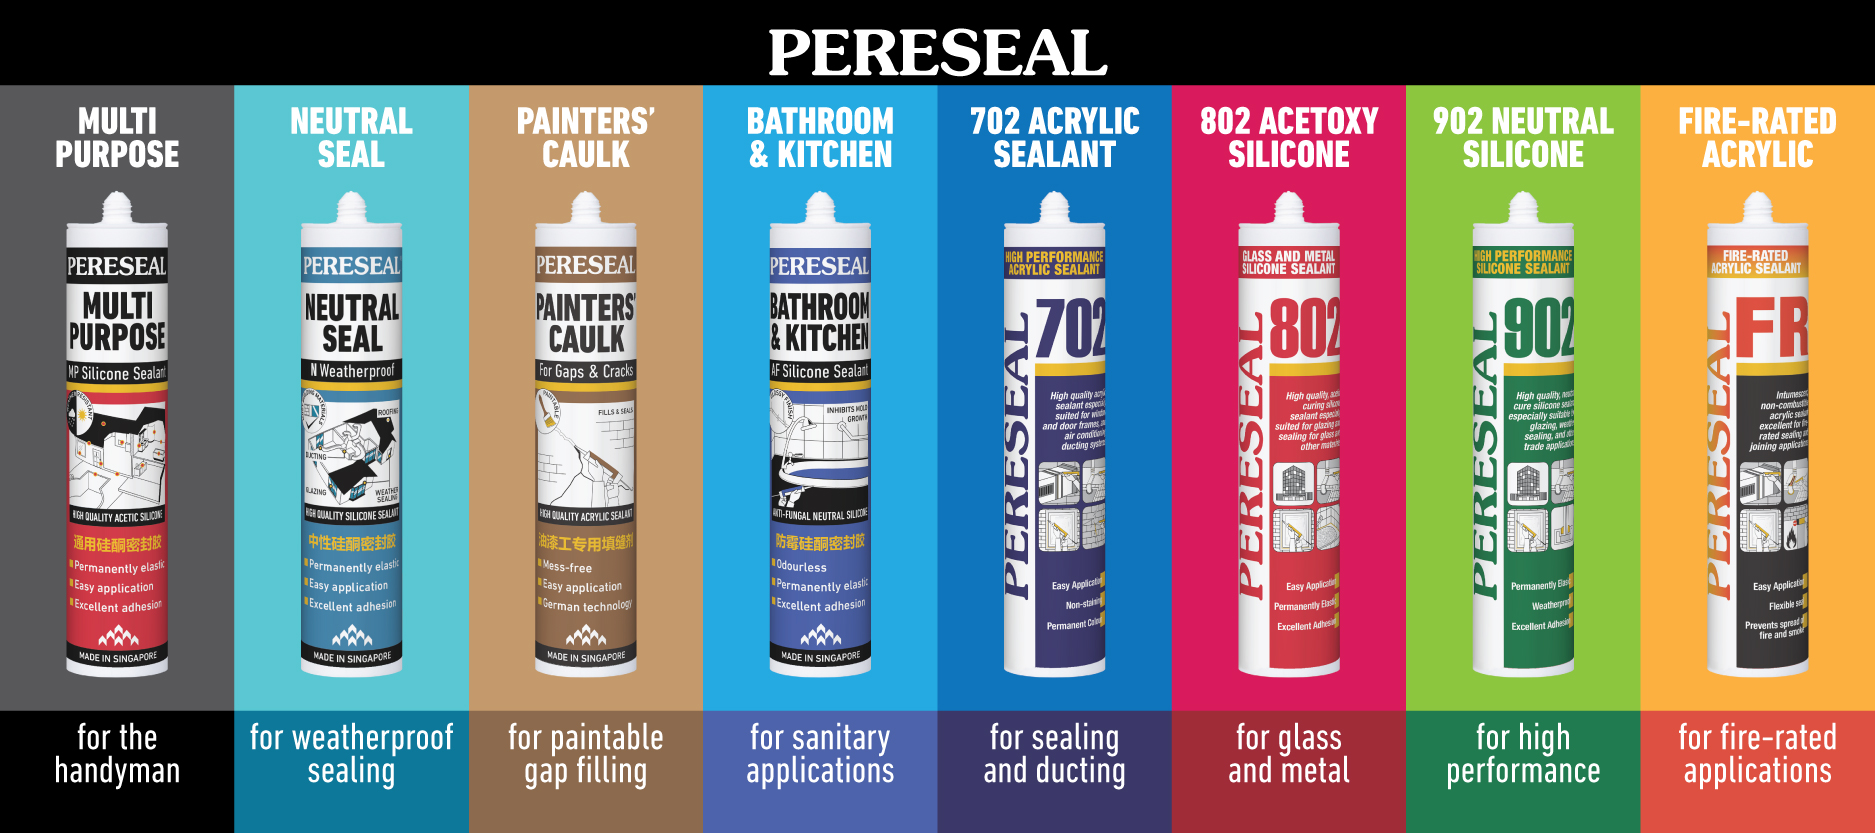 Pereseal - acrylic and silicone sealants